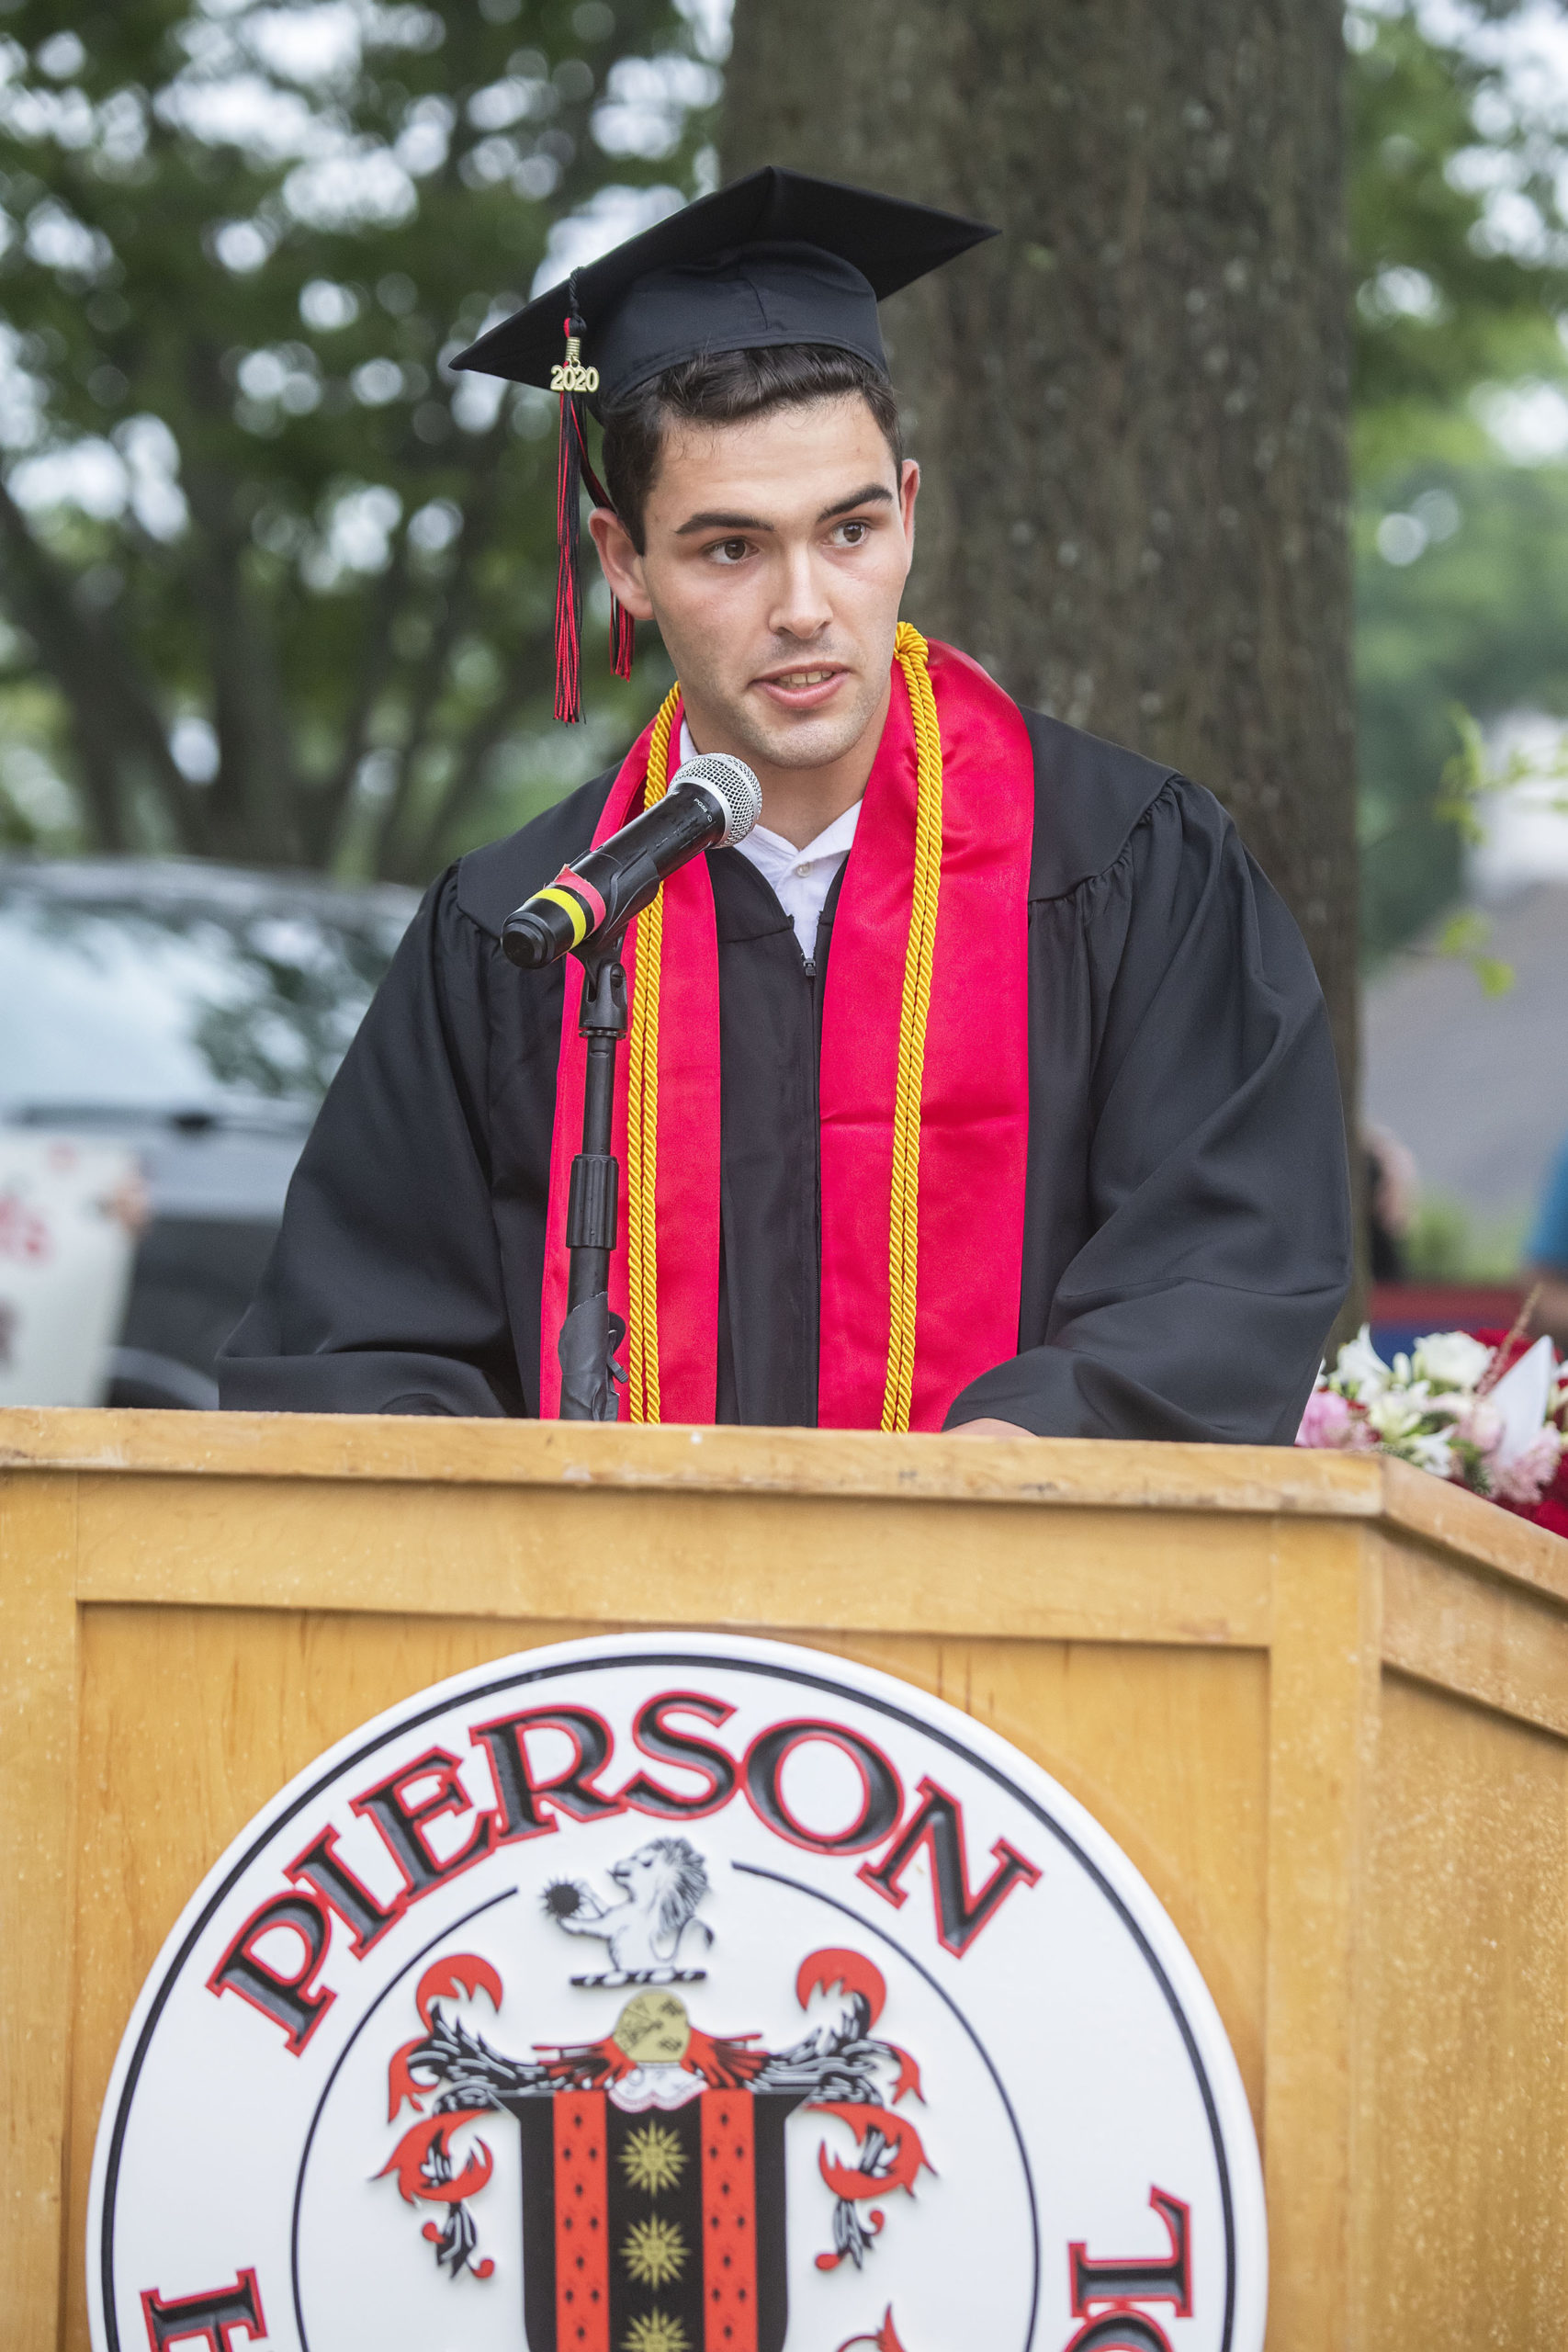 Salutatorian Chase Allardice speaks during the Pierson High School 2020 Commencement Ceremony at Pierson High School on Saturday.